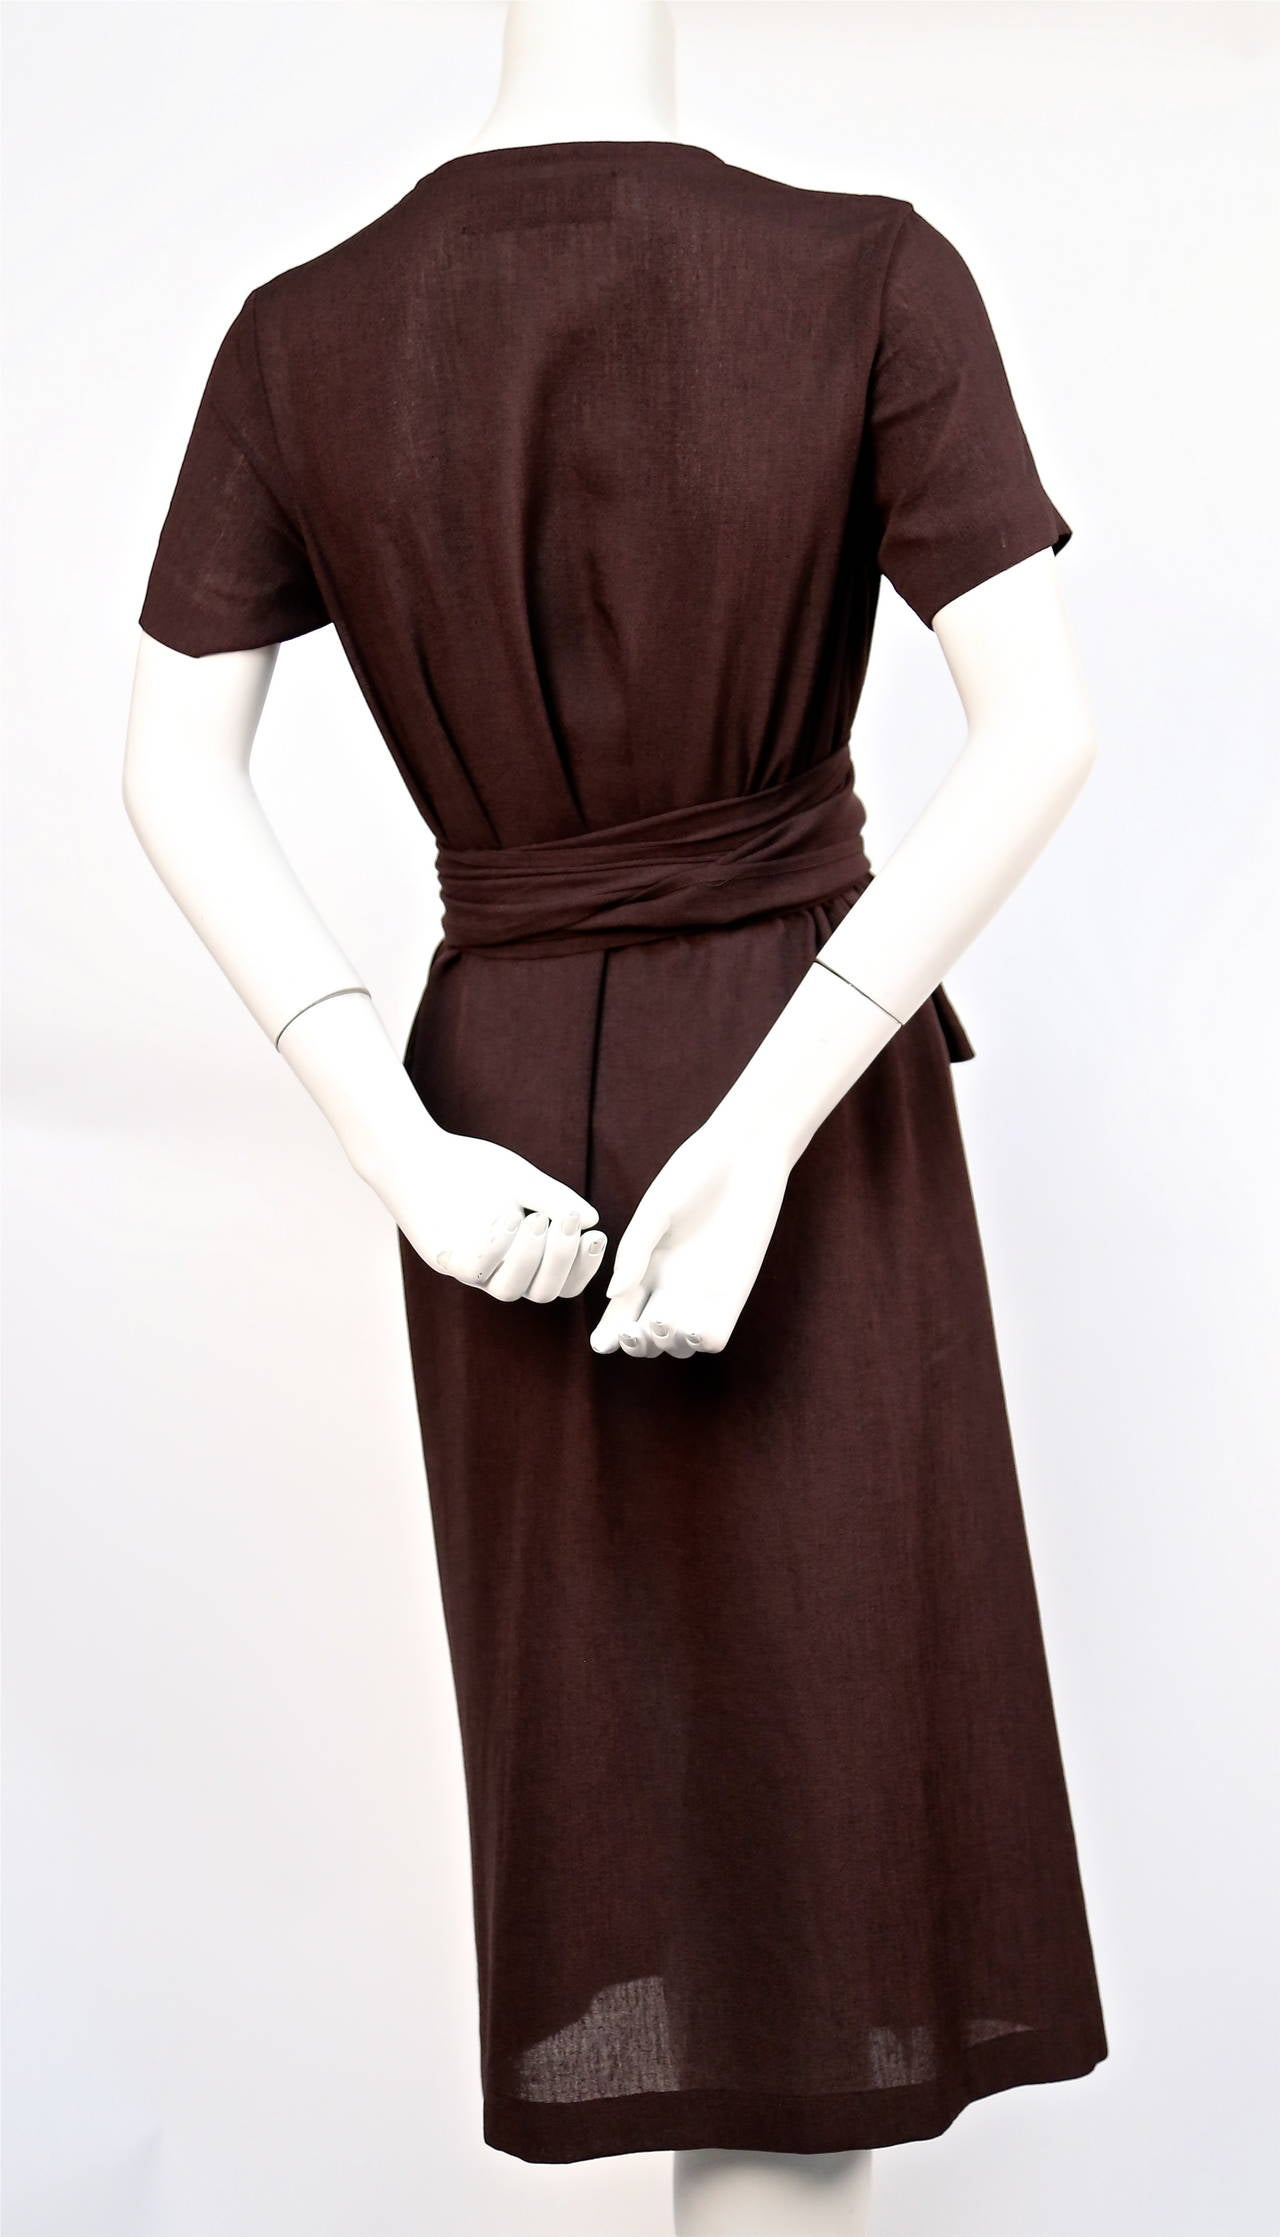 1997 COMME DES GARCONS brown draped dress with wrap waist 4